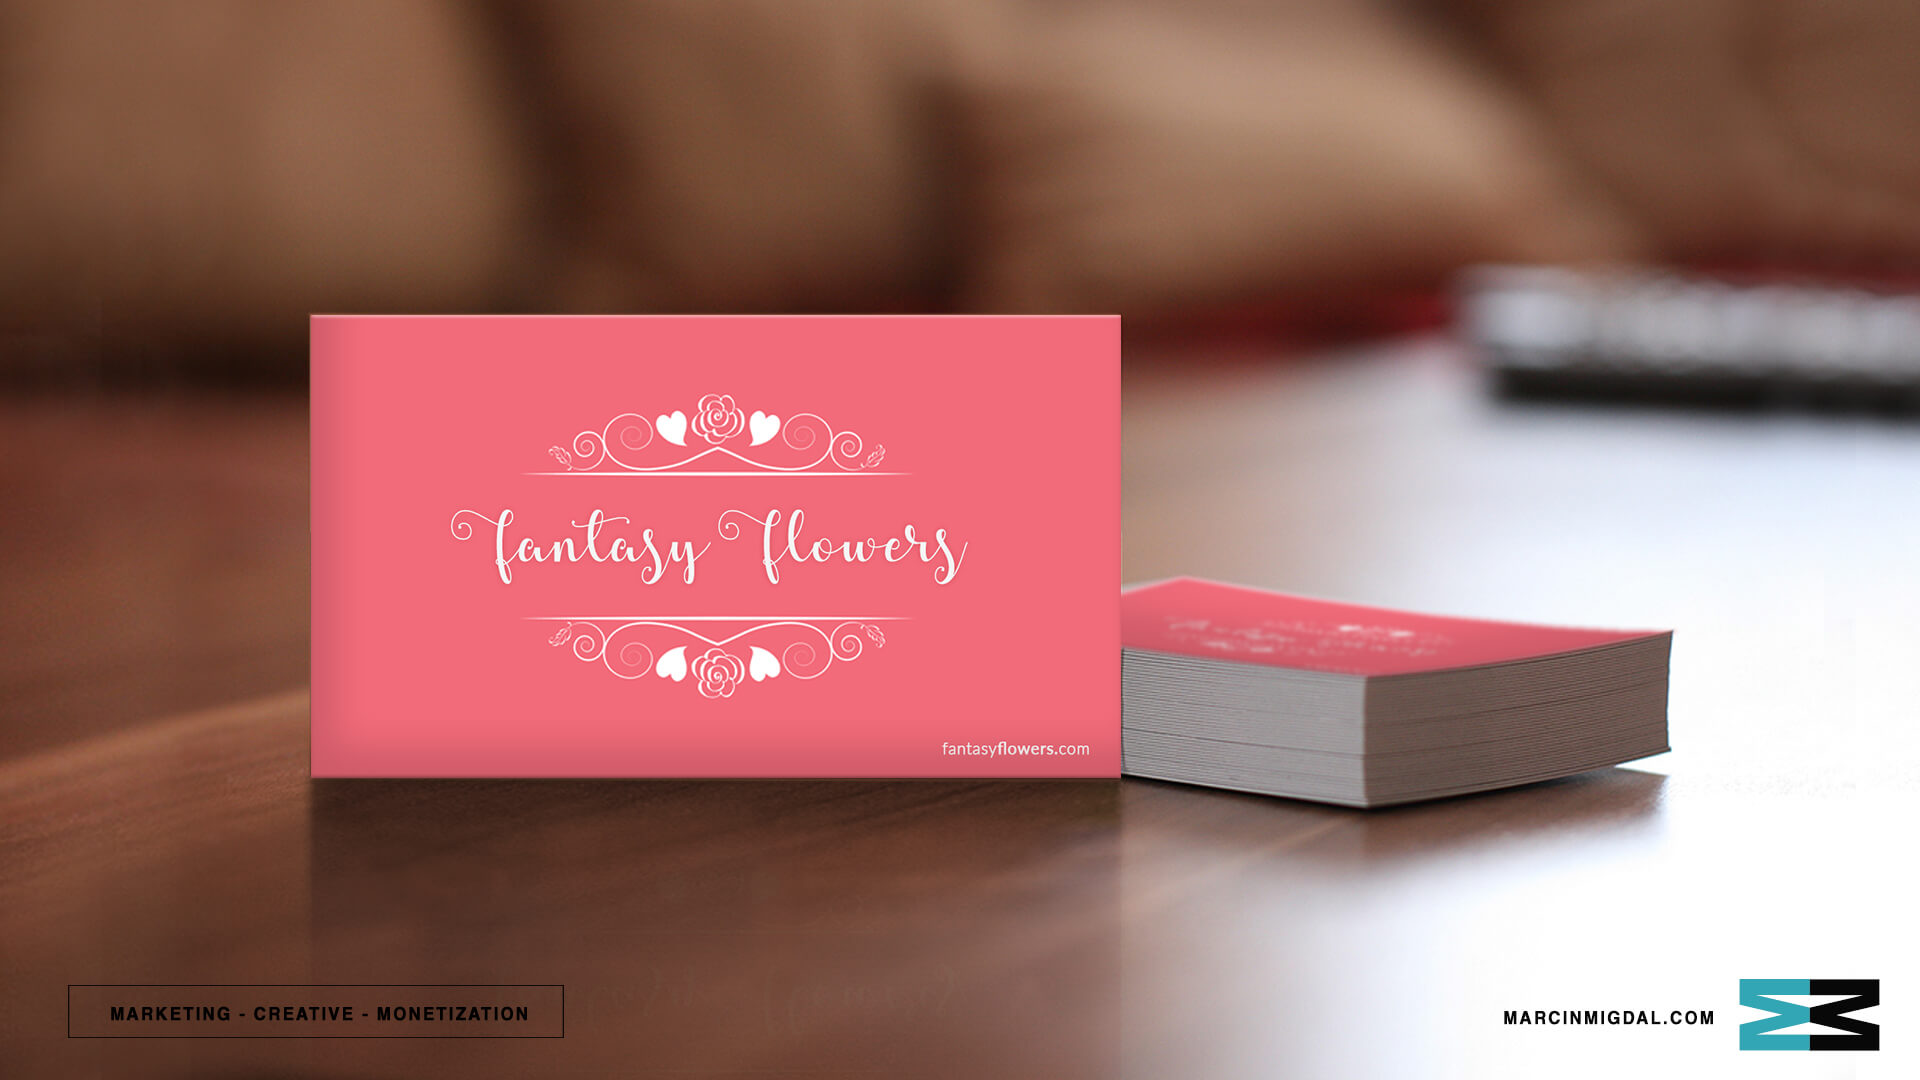 creative-director-marketing-director-marcin-migdal-custom-business-card-design-44flowers